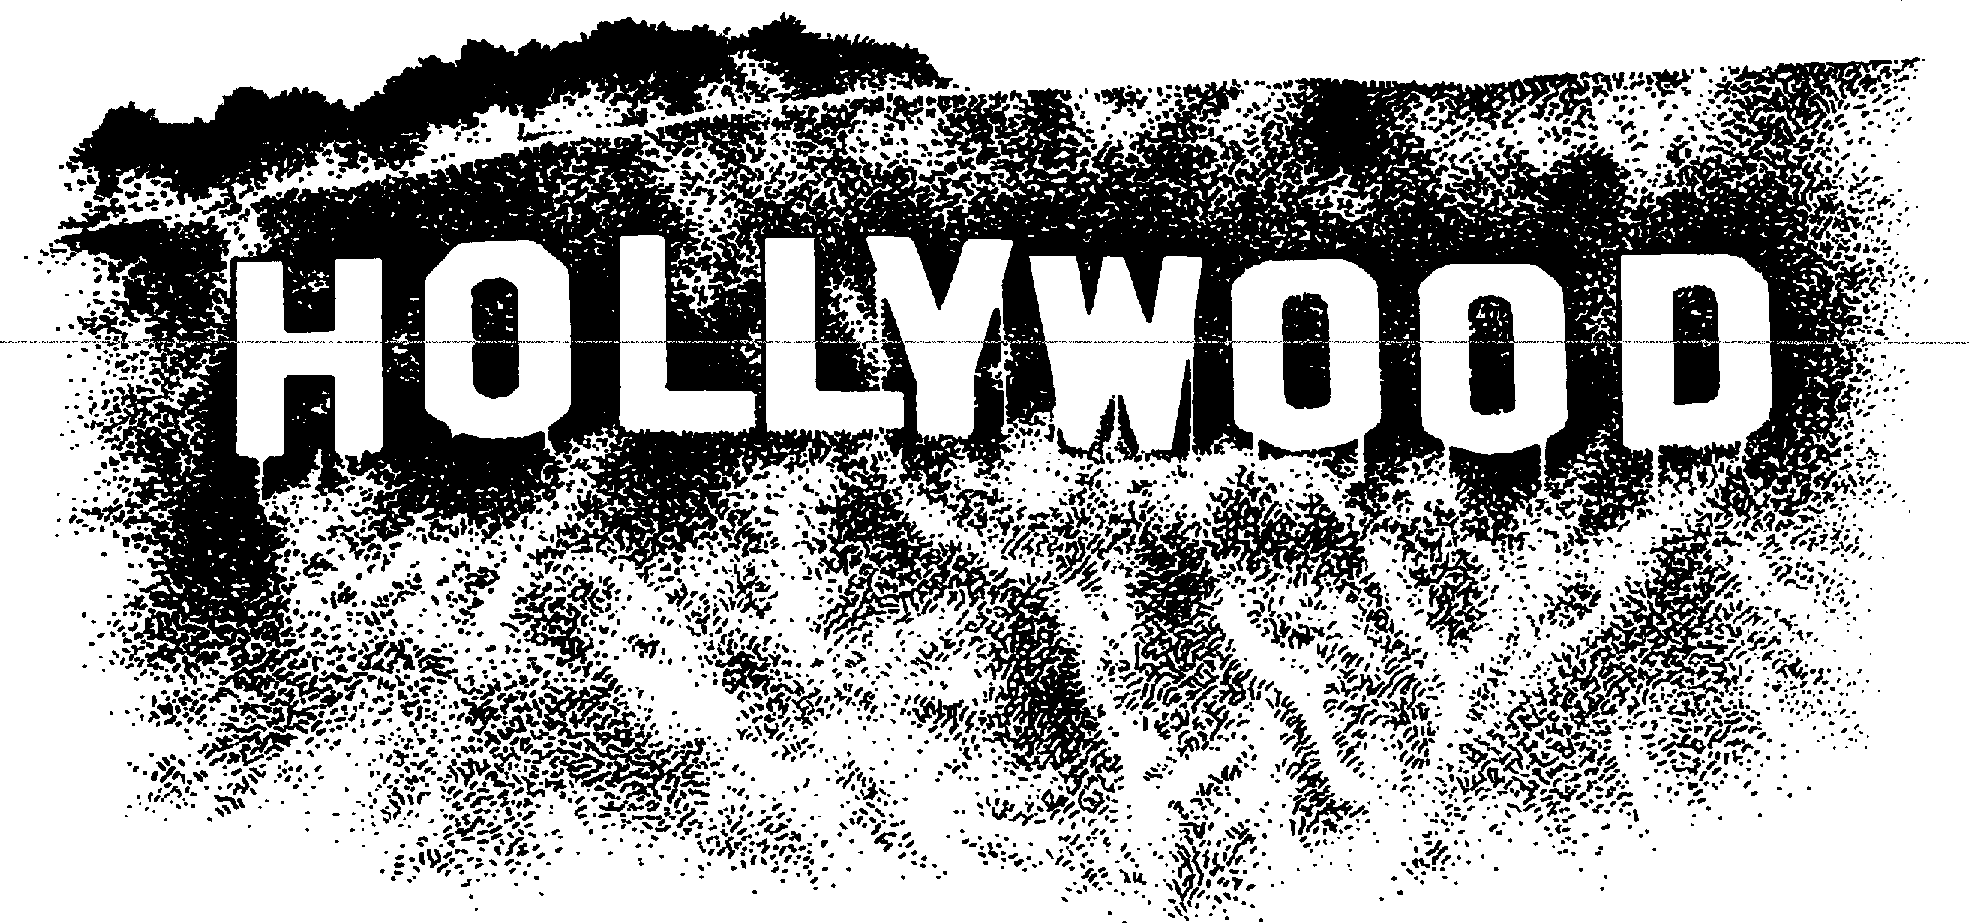 hollywood sign clipart google search merrily we roll along rh pinterest com Hollywood Sign Outline Hollywood Walk of Fame